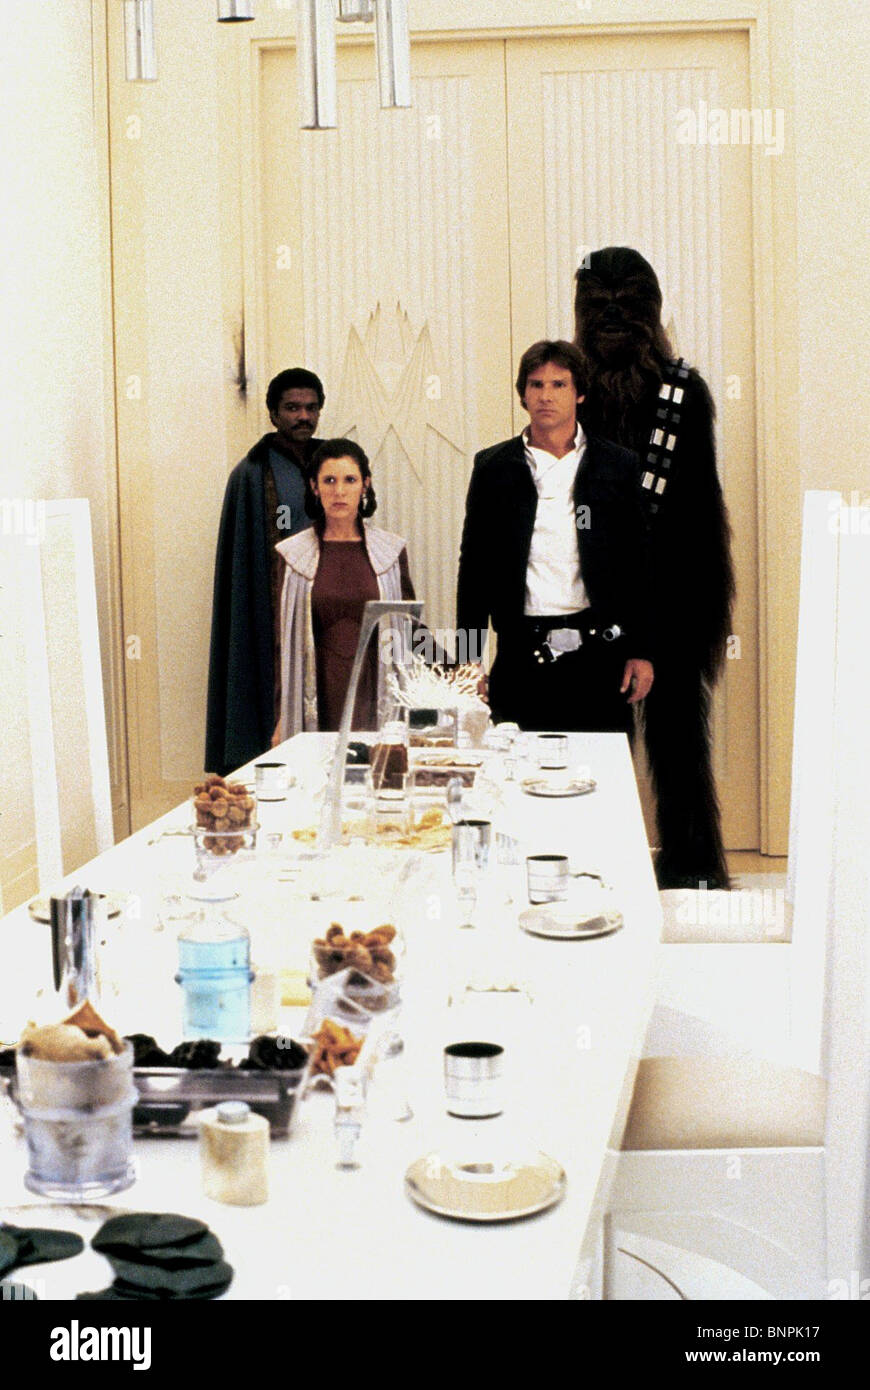 BILLY DEE WILLIAMS CARRIE FISHER HARRISON FORD PETER MAYHEW (CHEWBACCA) STAR WARS: THE EMPIRE STRIKES BACK; STAR - Stock Image